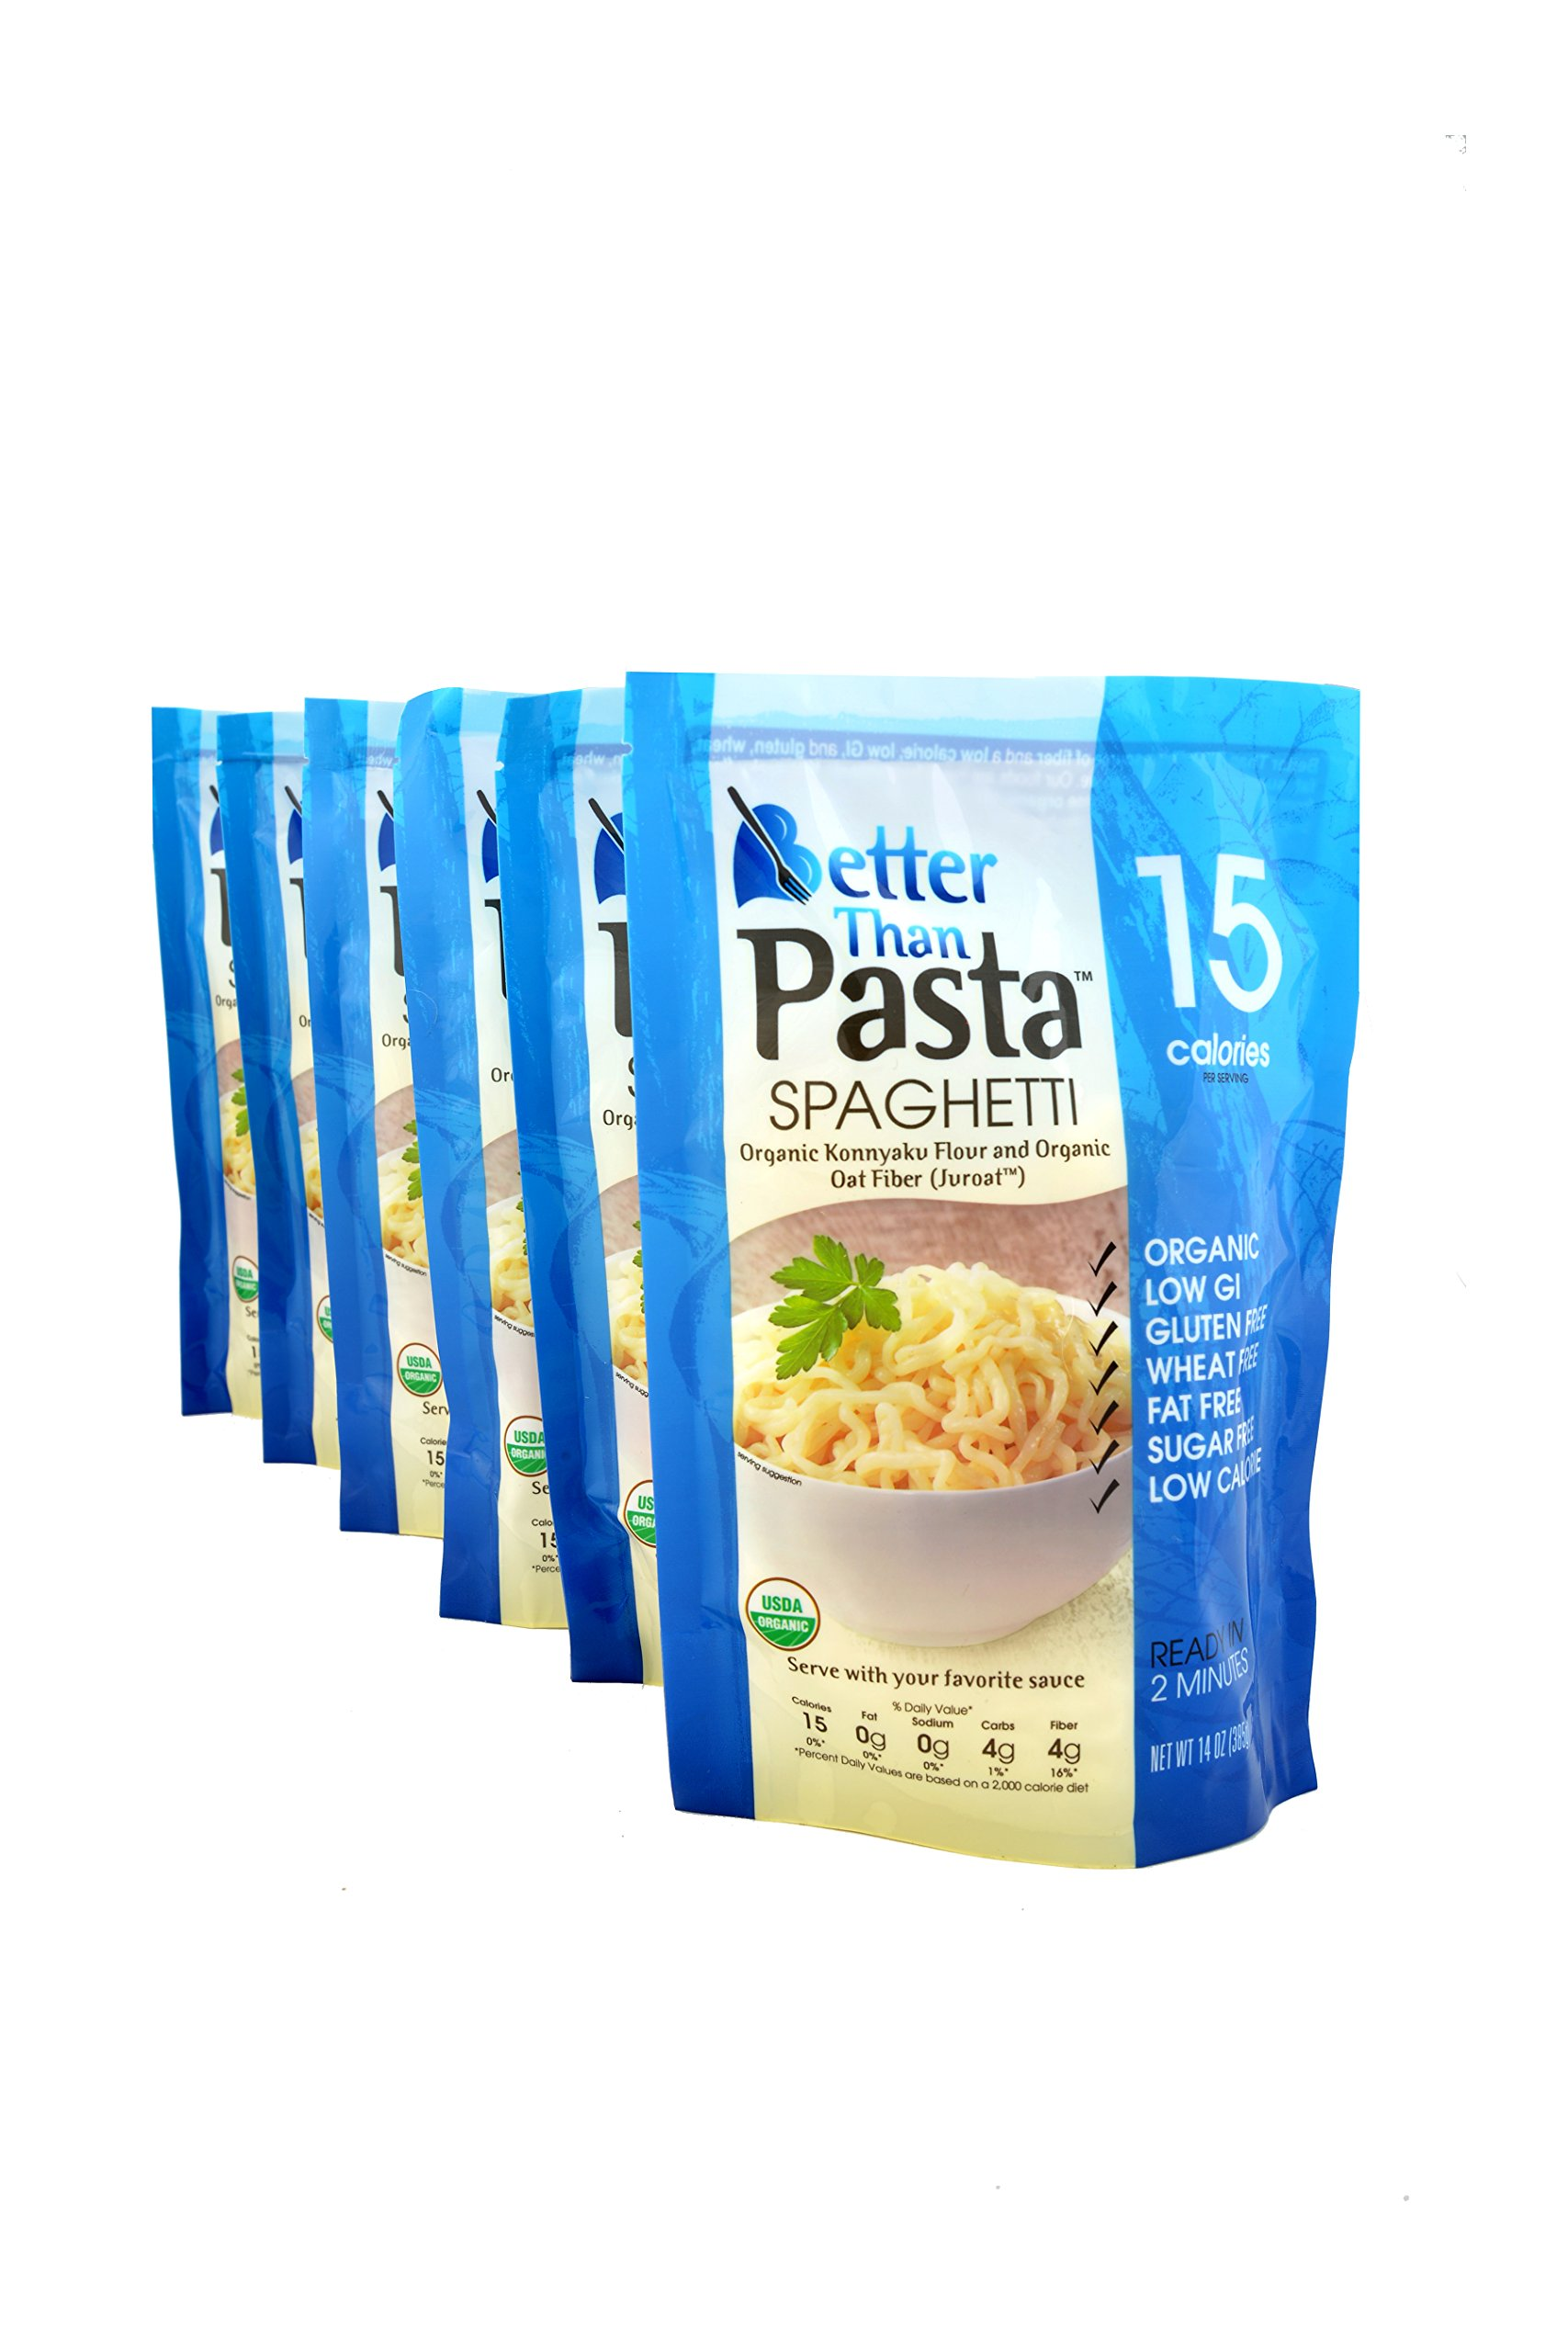 Better Than Pasta. Certified Organic. Vegan, Gluten-Free, Non-GMO, Konjac, Shirataki Spaghetti Noodles 14oz. (6pack/84.oz) ($0.29 Per Ounce) by Better Than Foods